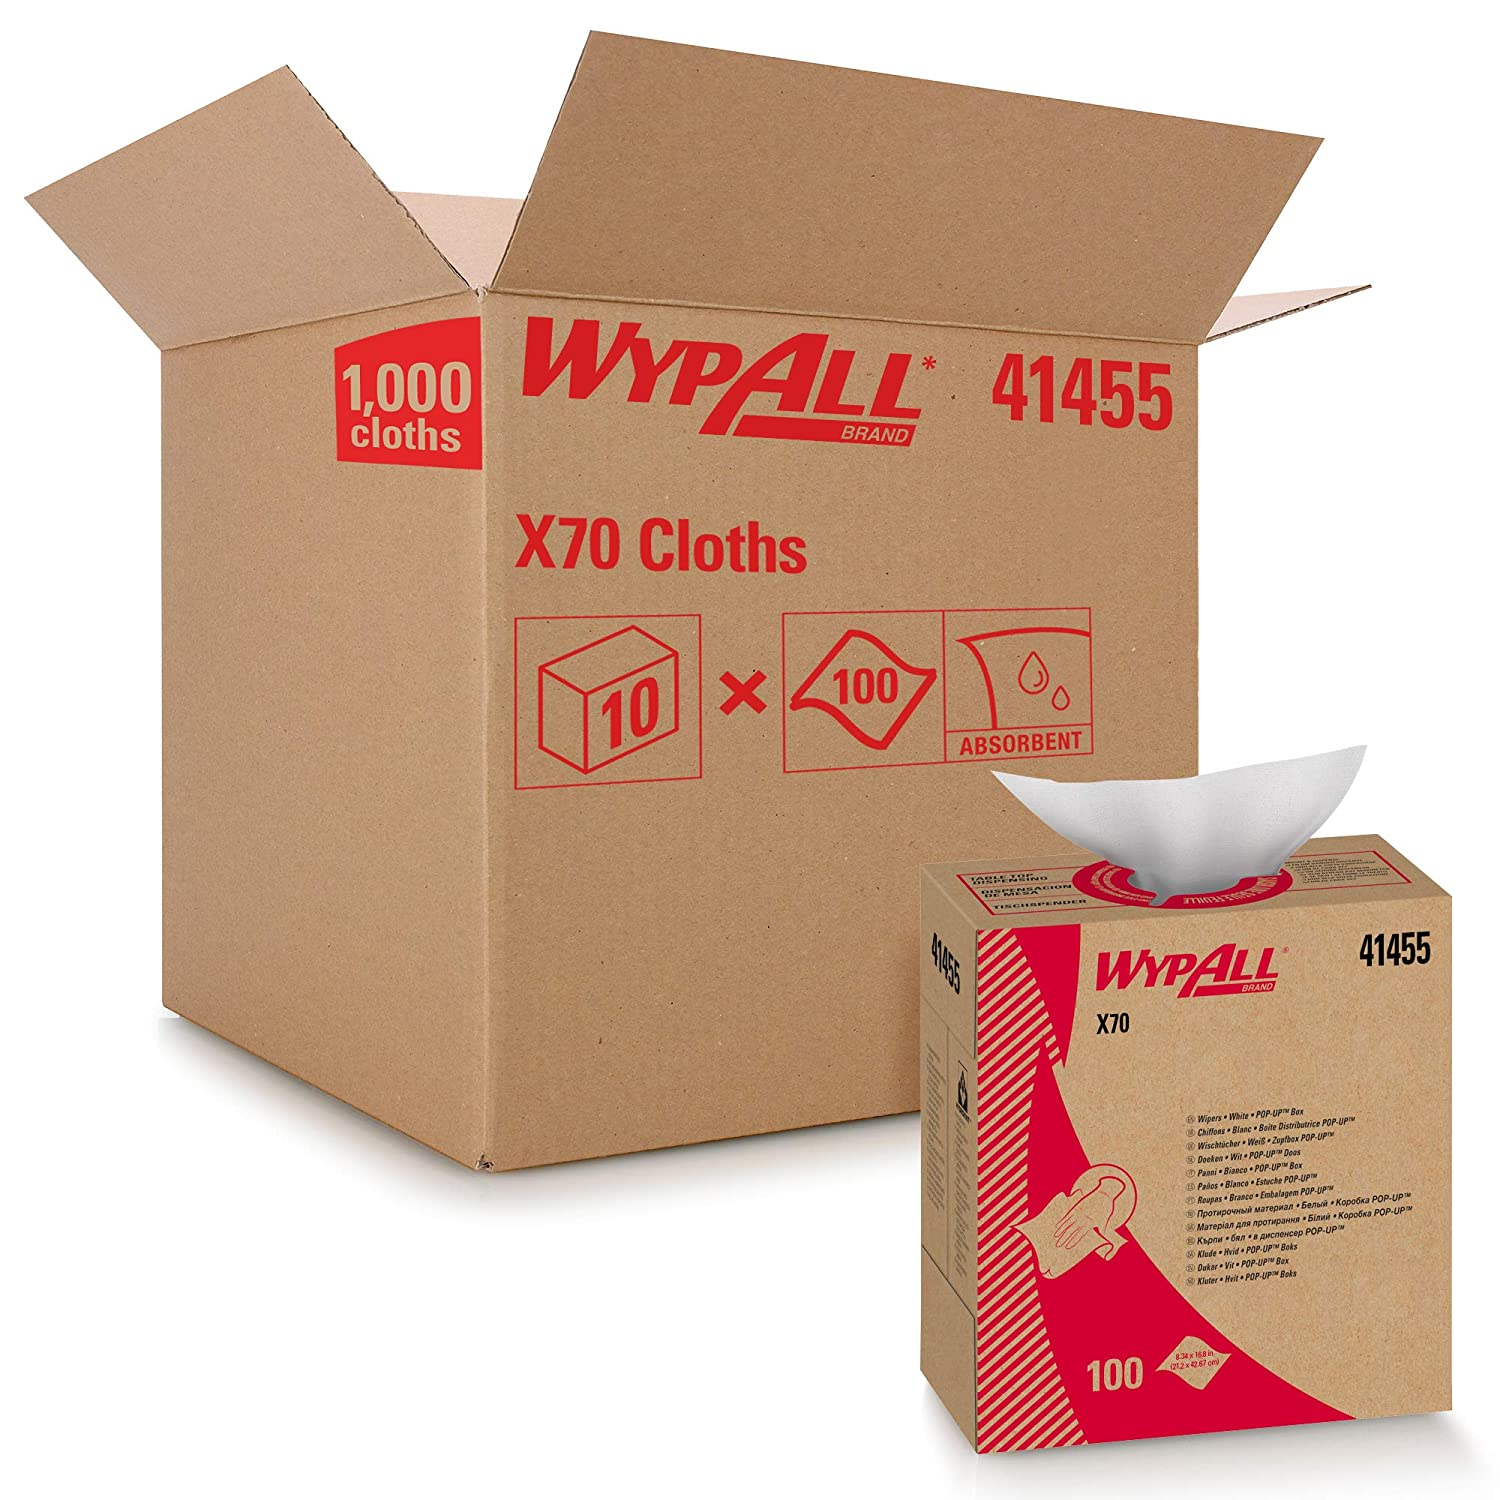 WypAll X70 Extended Use Reusable Cloths (41455), Pop-Up Box,White, 10 Boxes / Case, 100 Sheets / Box, 1,000 Sheets / Case